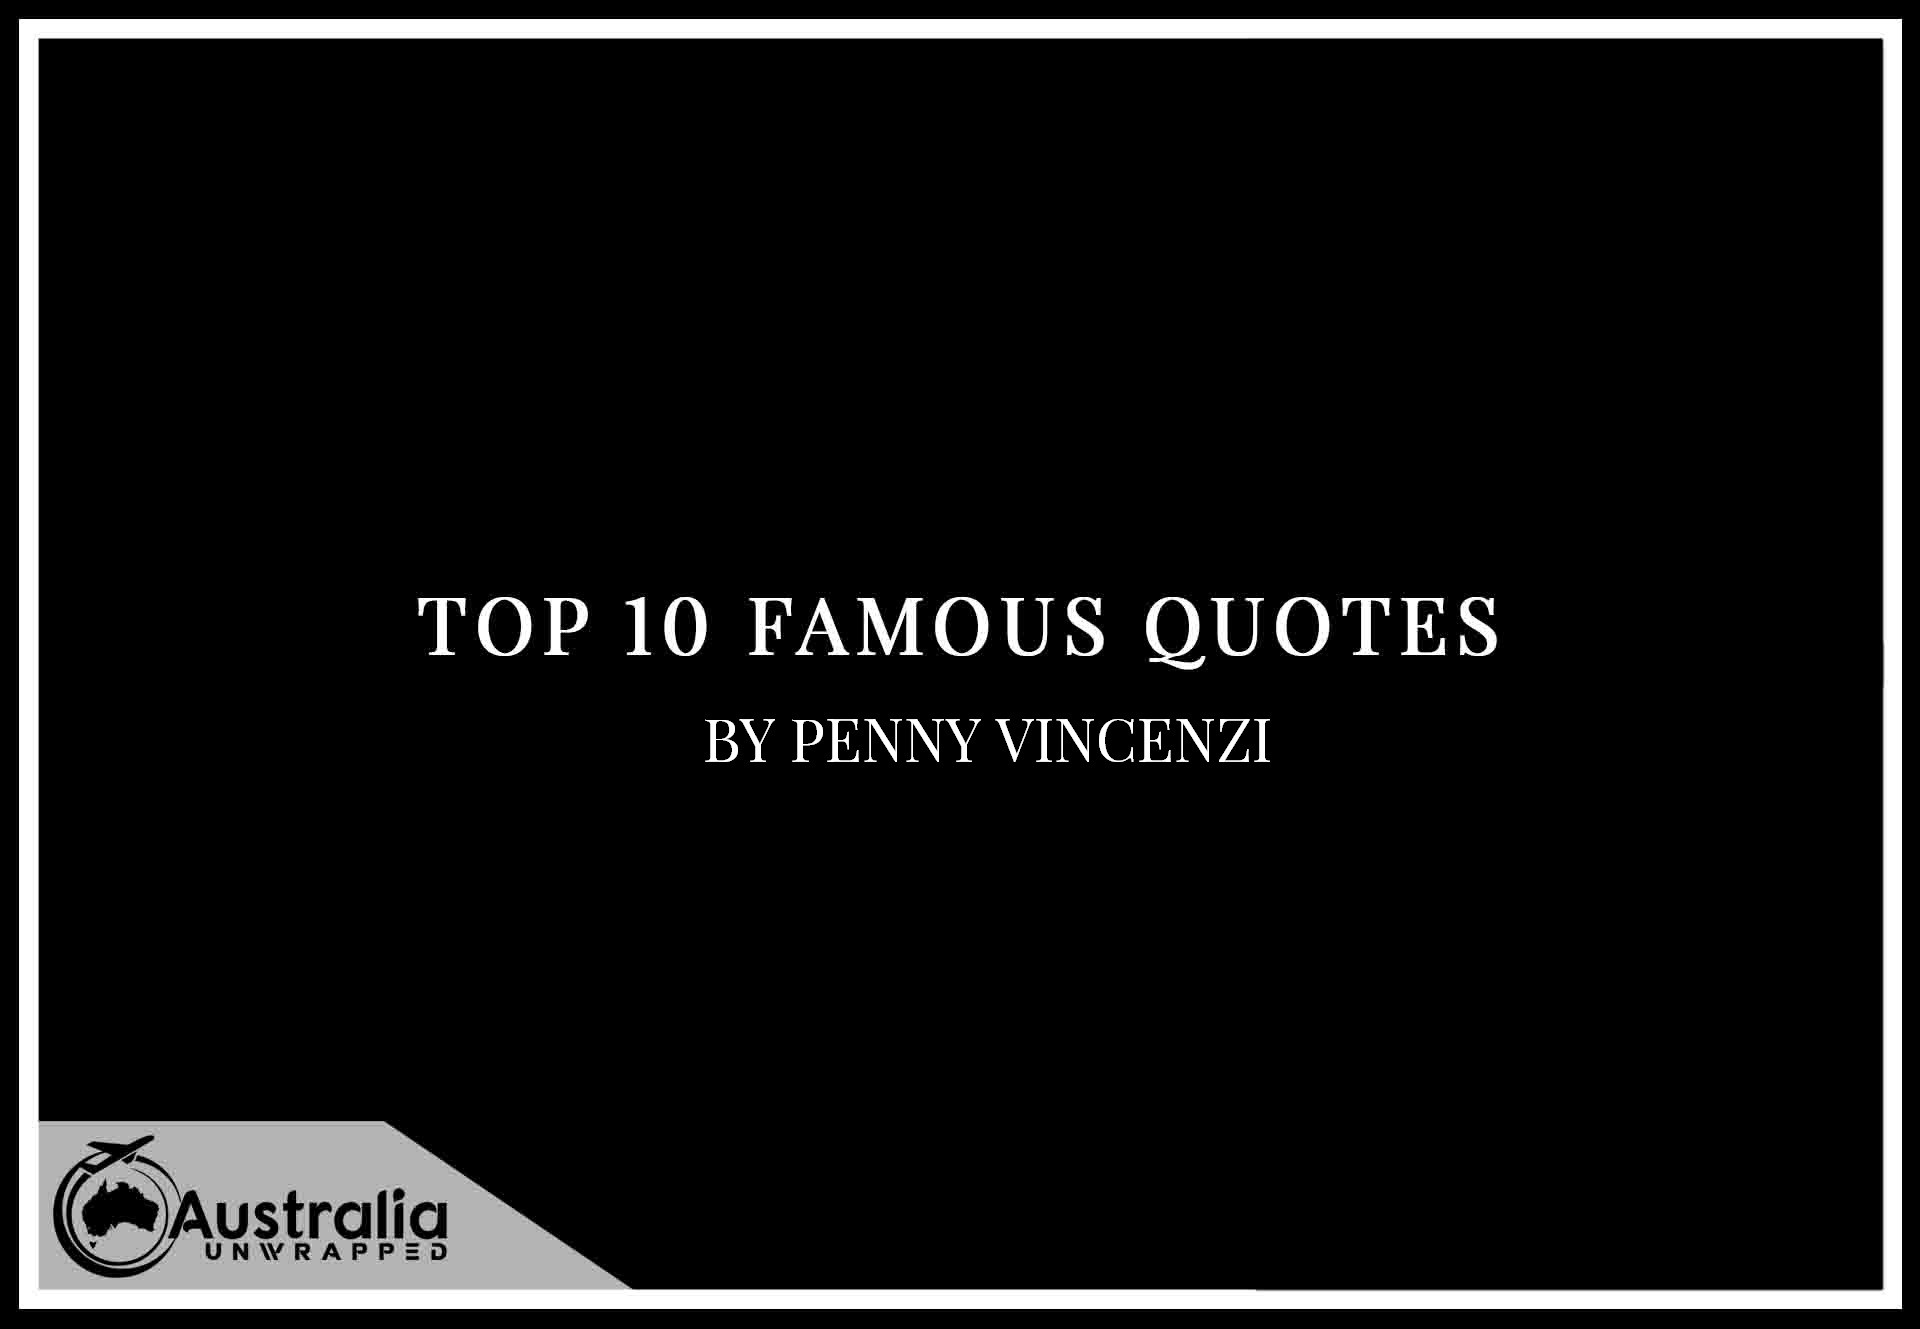 Top 10 Famous Quotes by Author Penny Vincenzi